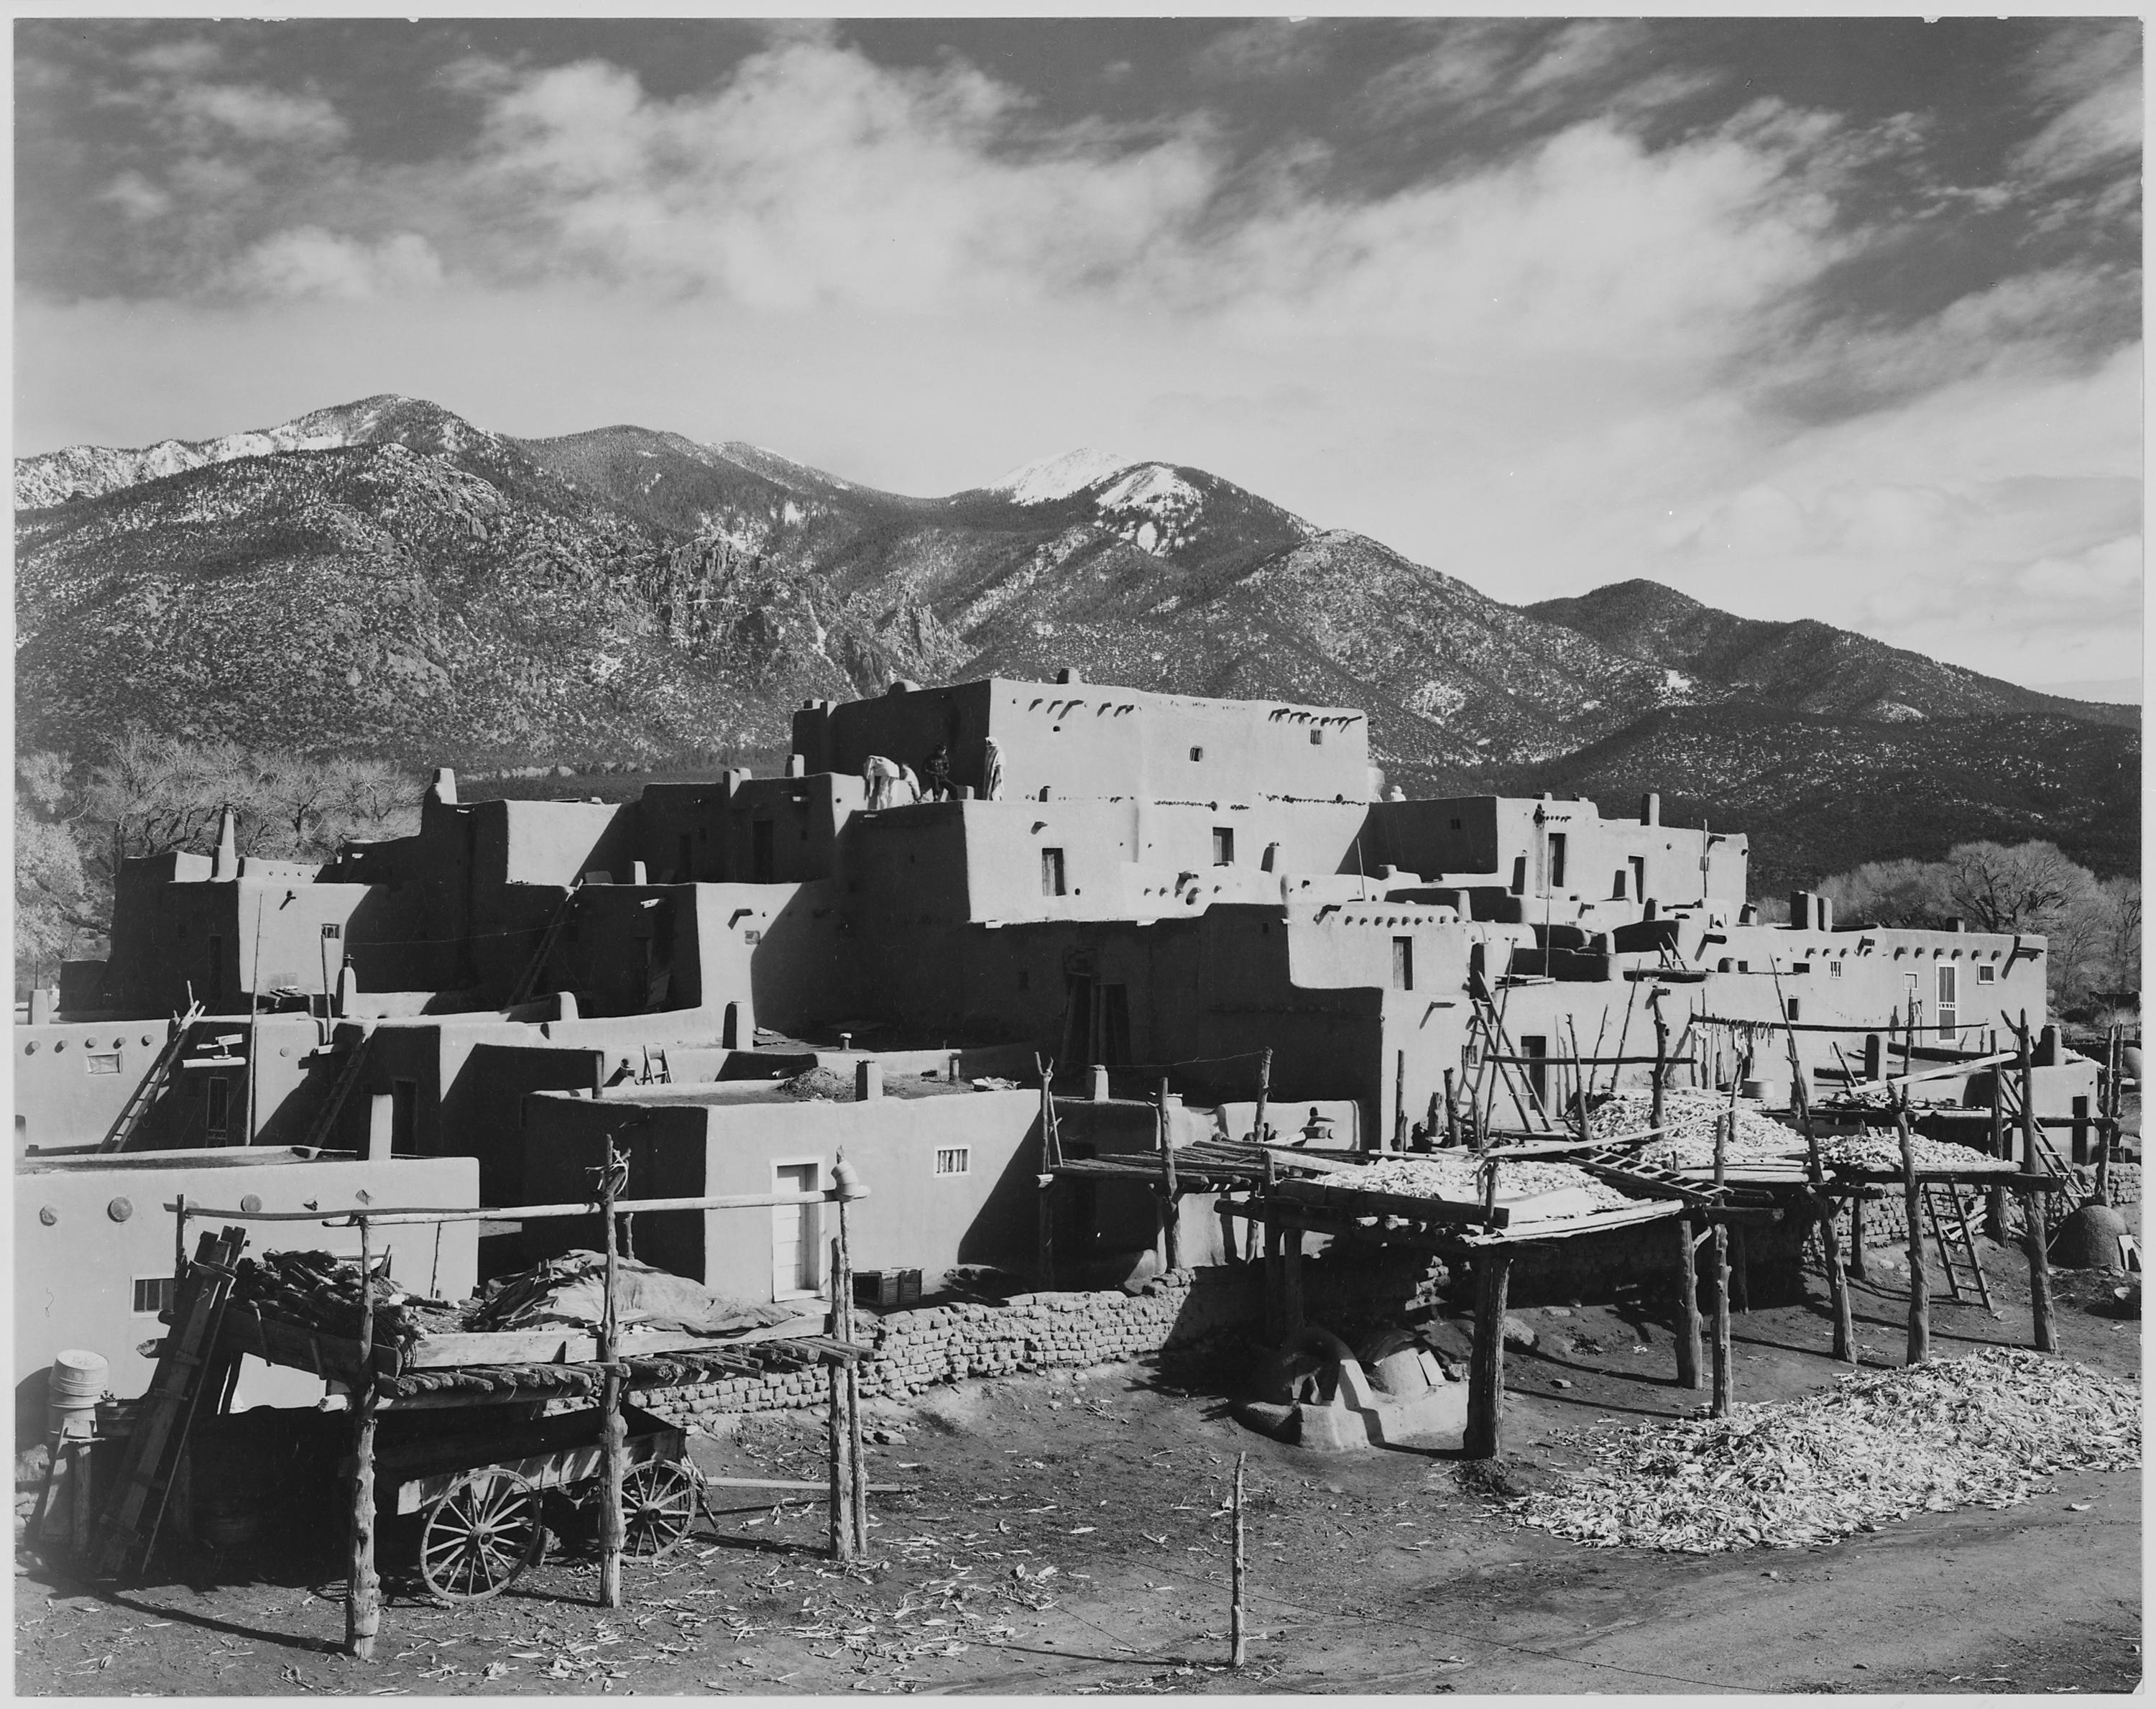 Ansel Adams Photographs Emphasized The Beauty Of Nature As